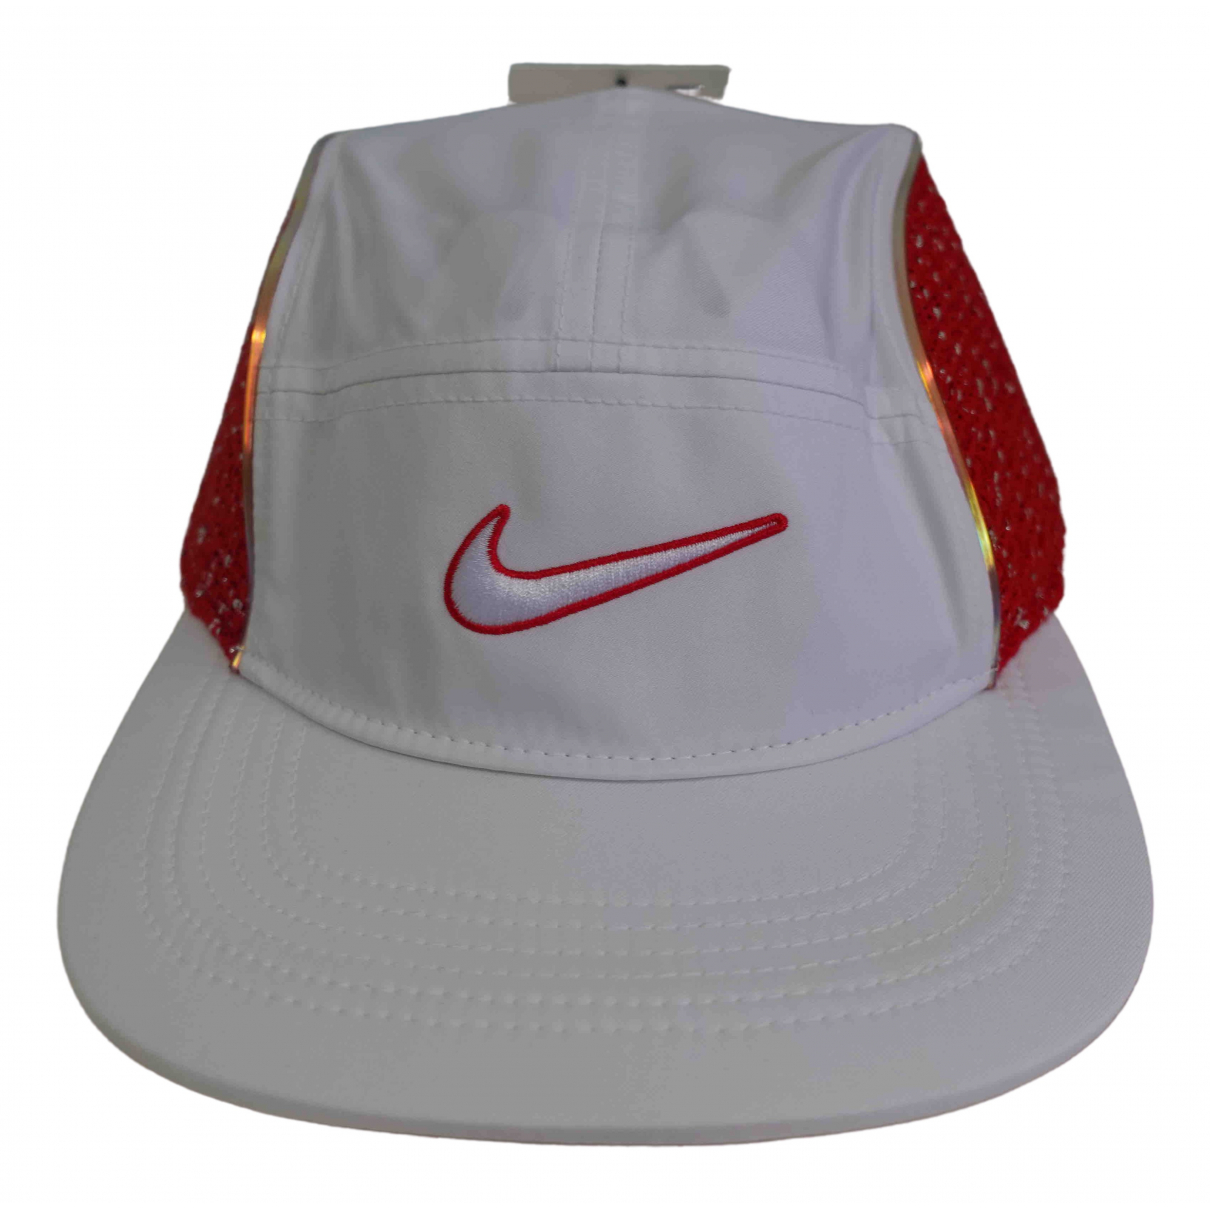 Nike X Supreme \N Cloth hat for Women M International